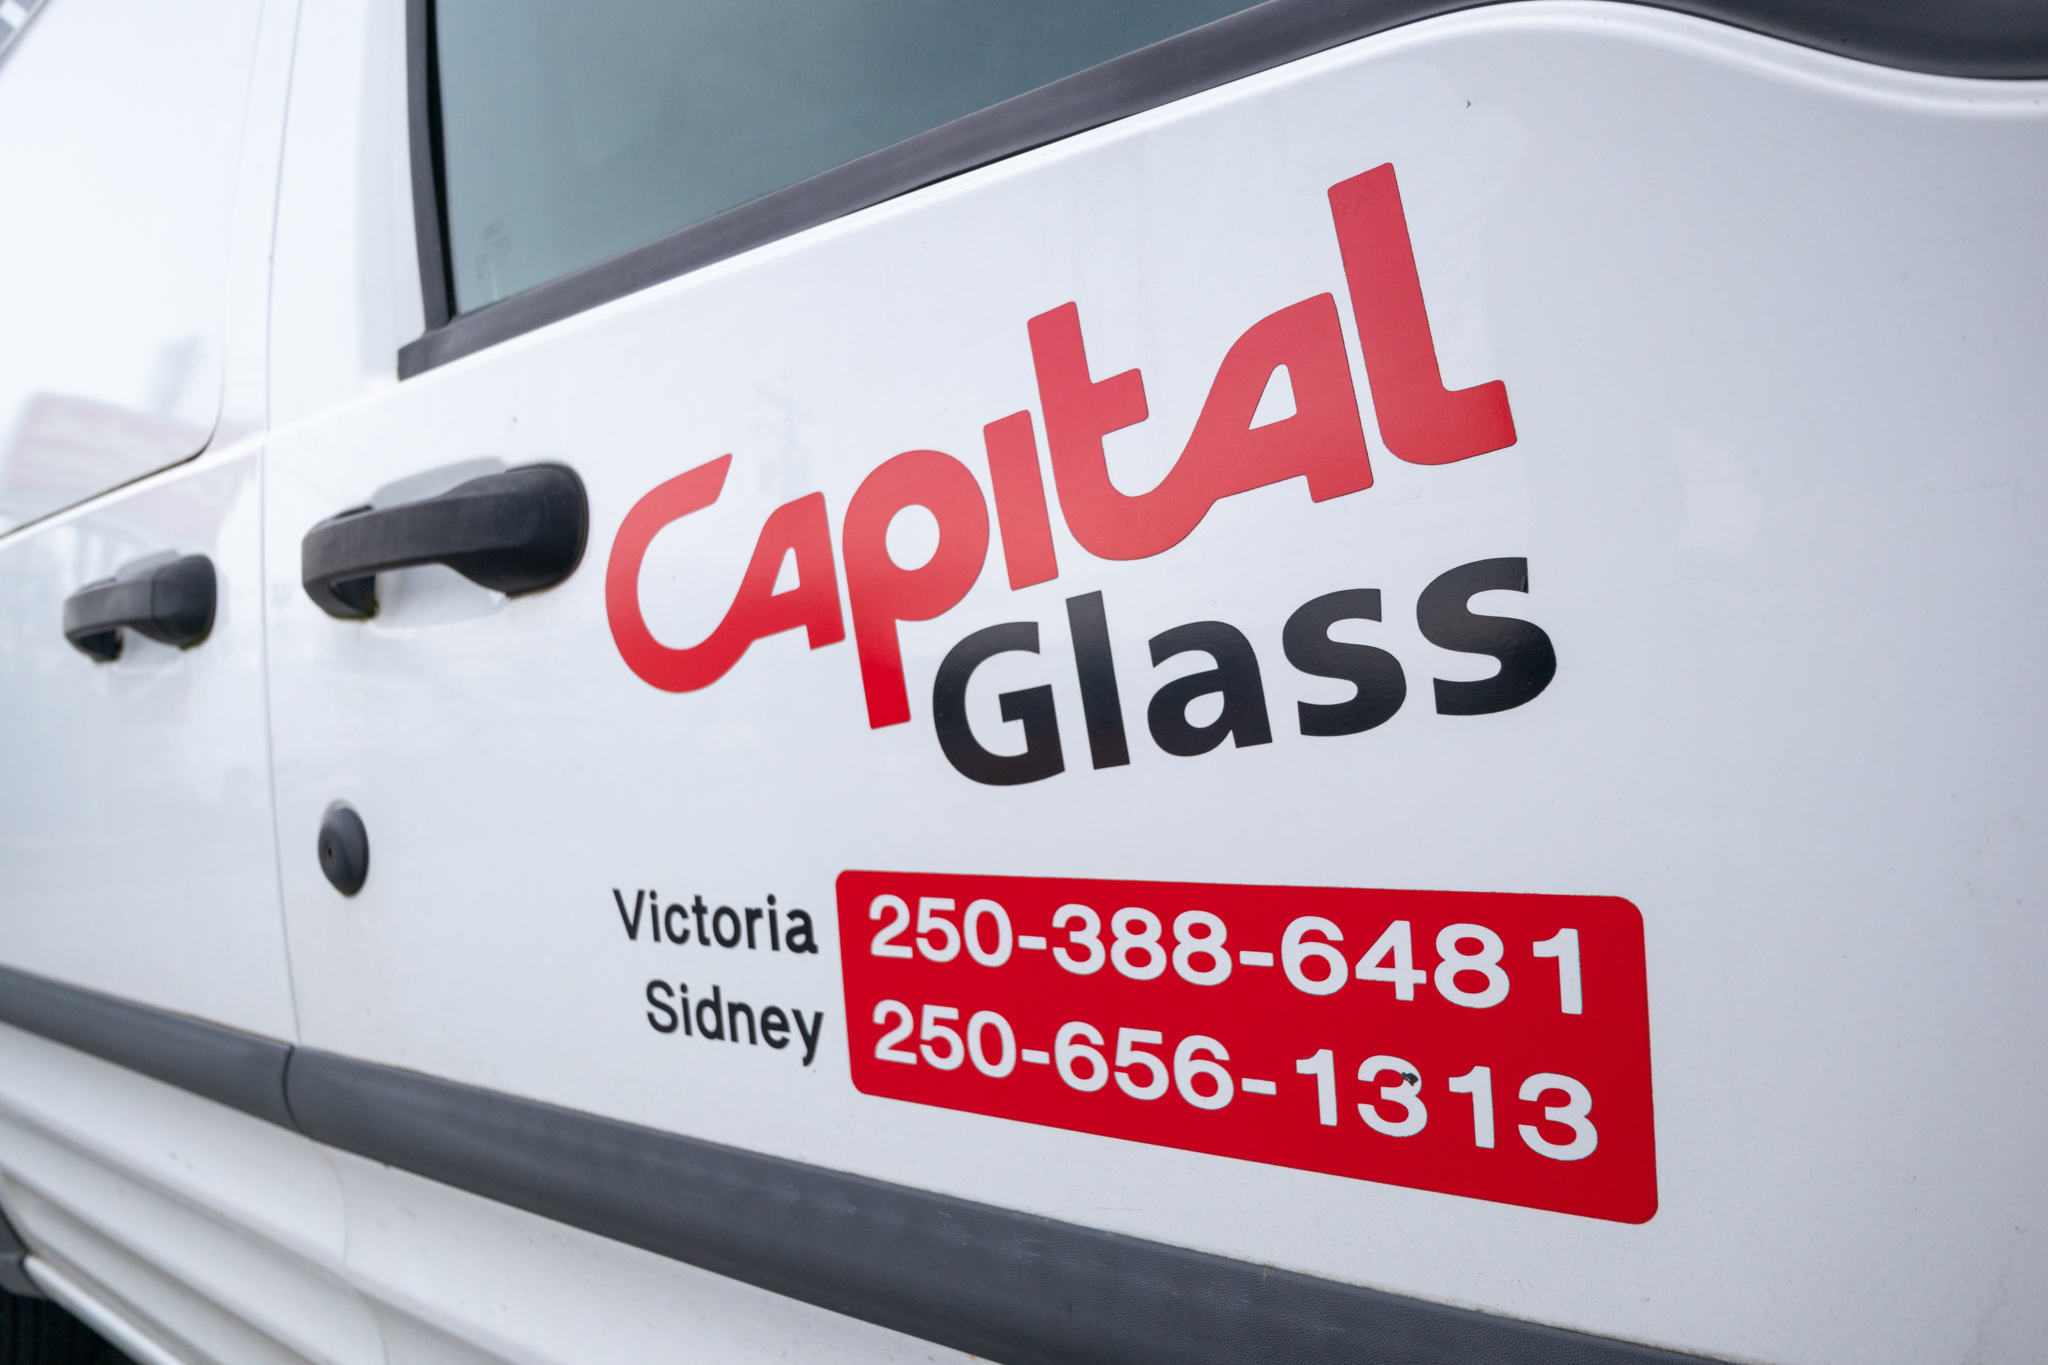 Capital Auto Glass & Upholstery Ltd in Victoria